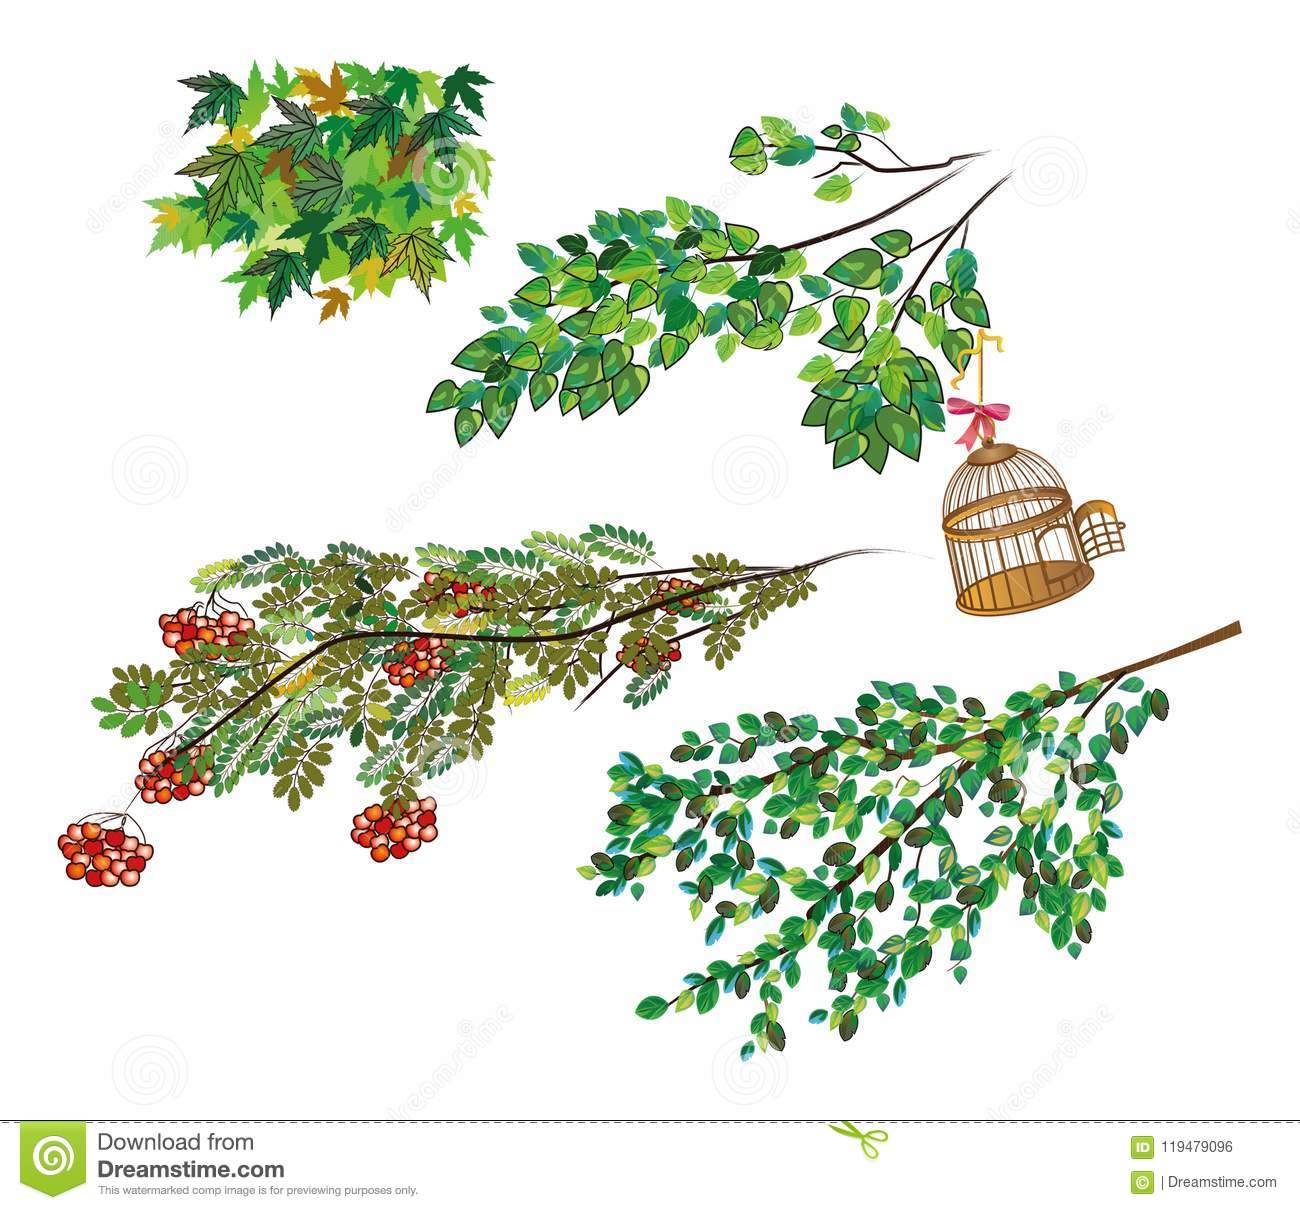 Branches of different trees mountain ash, maple, aspen with an open bird cage